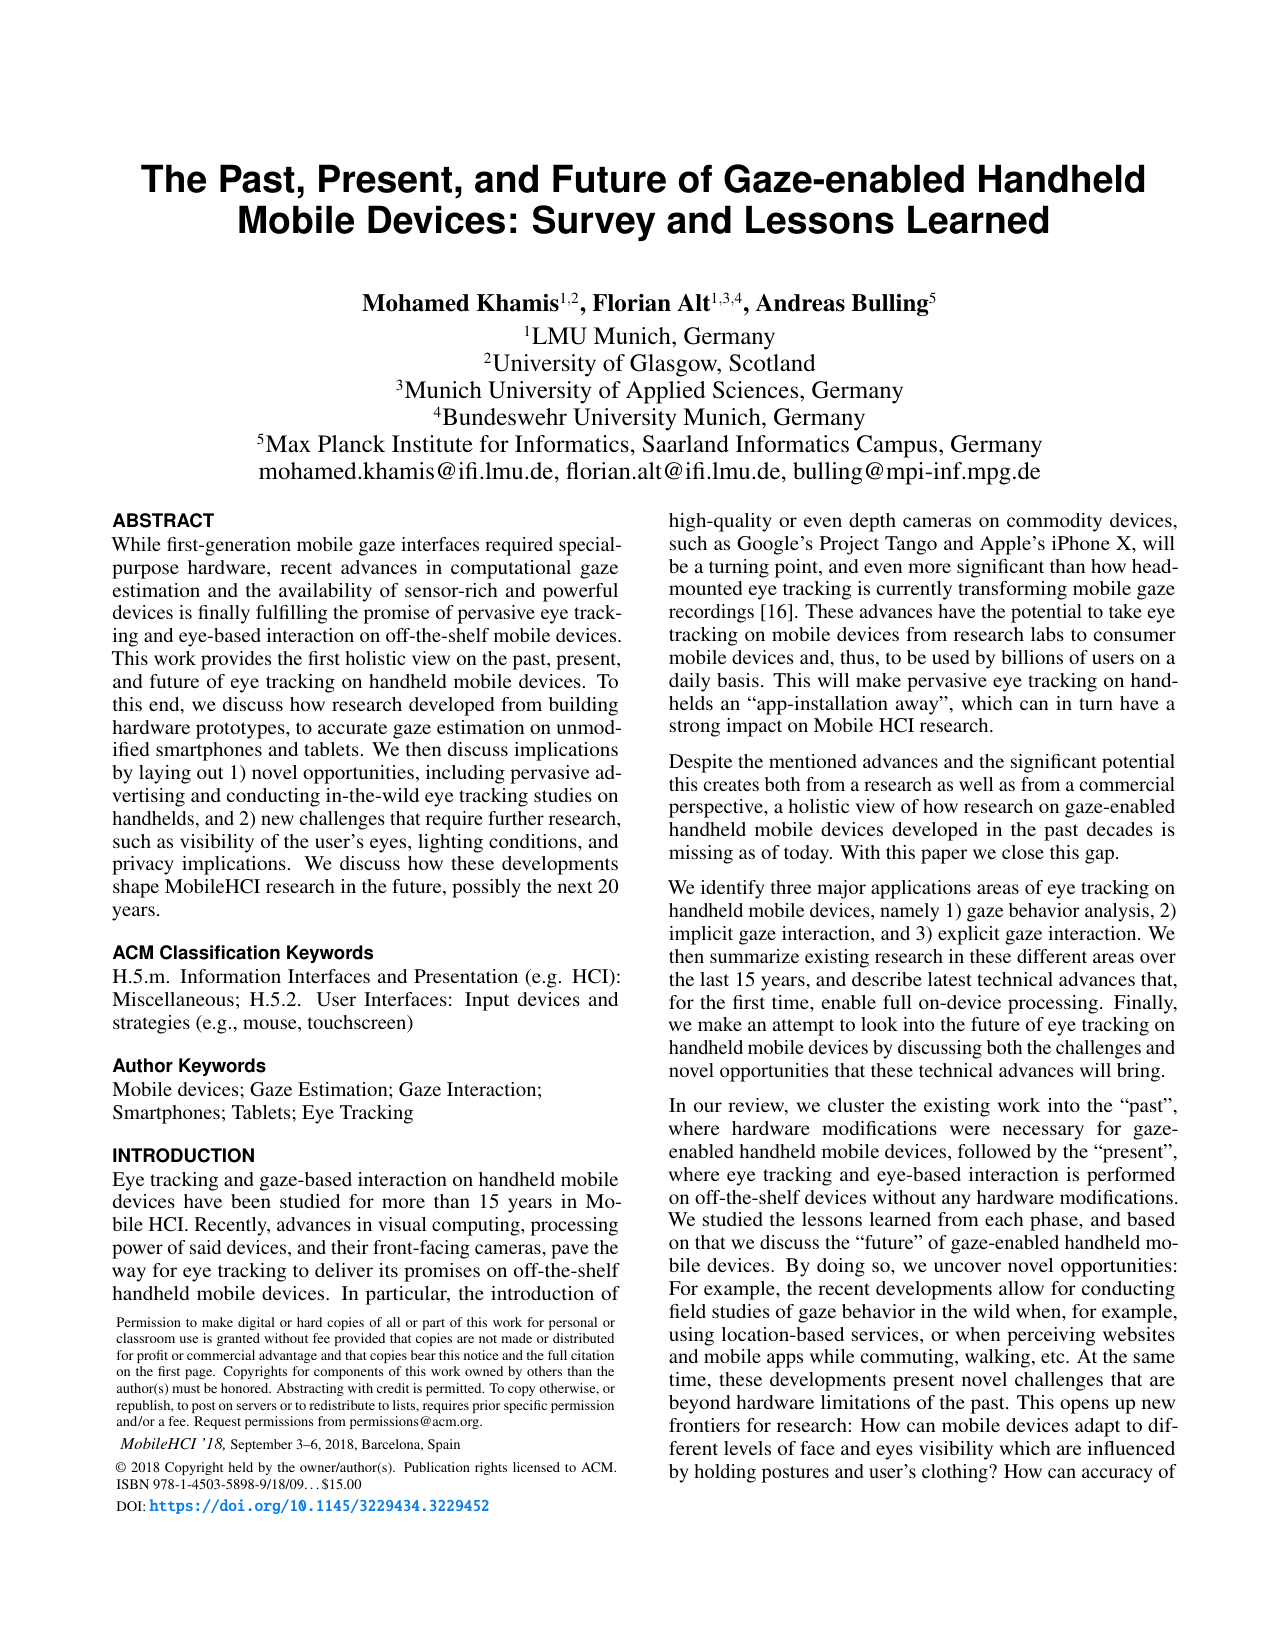 The Past, Present, and Future of Gaze-enabled Handheld Mobile Devices: Survey and Lessons Learned